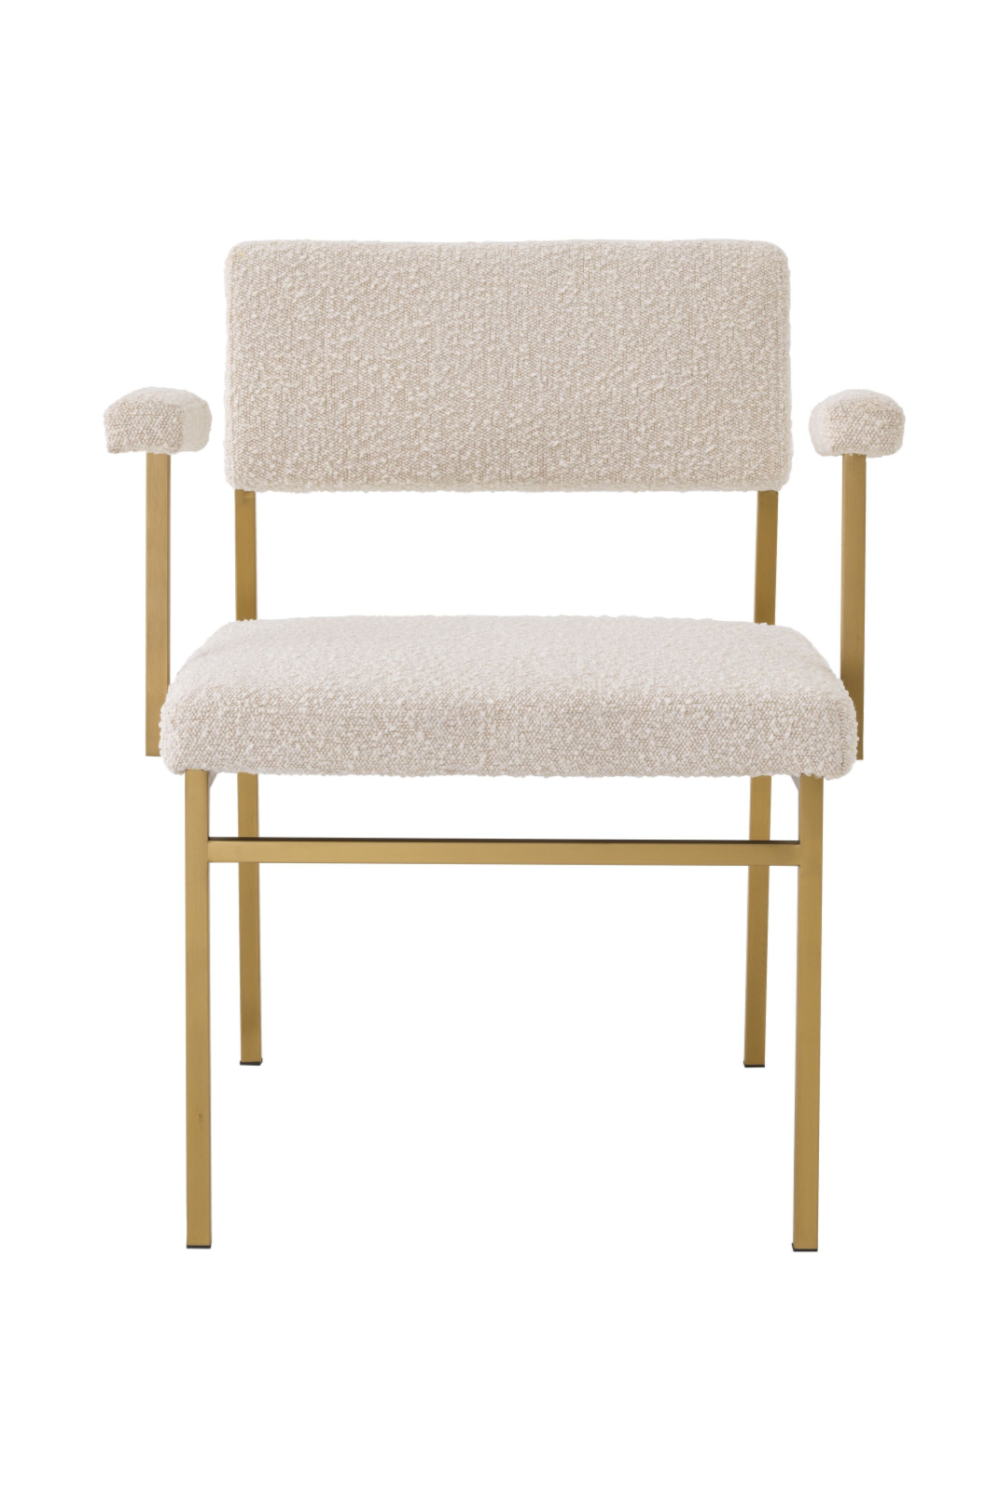 Bouclé Cream Brass Accent Chair - Eichholtz Dunmore